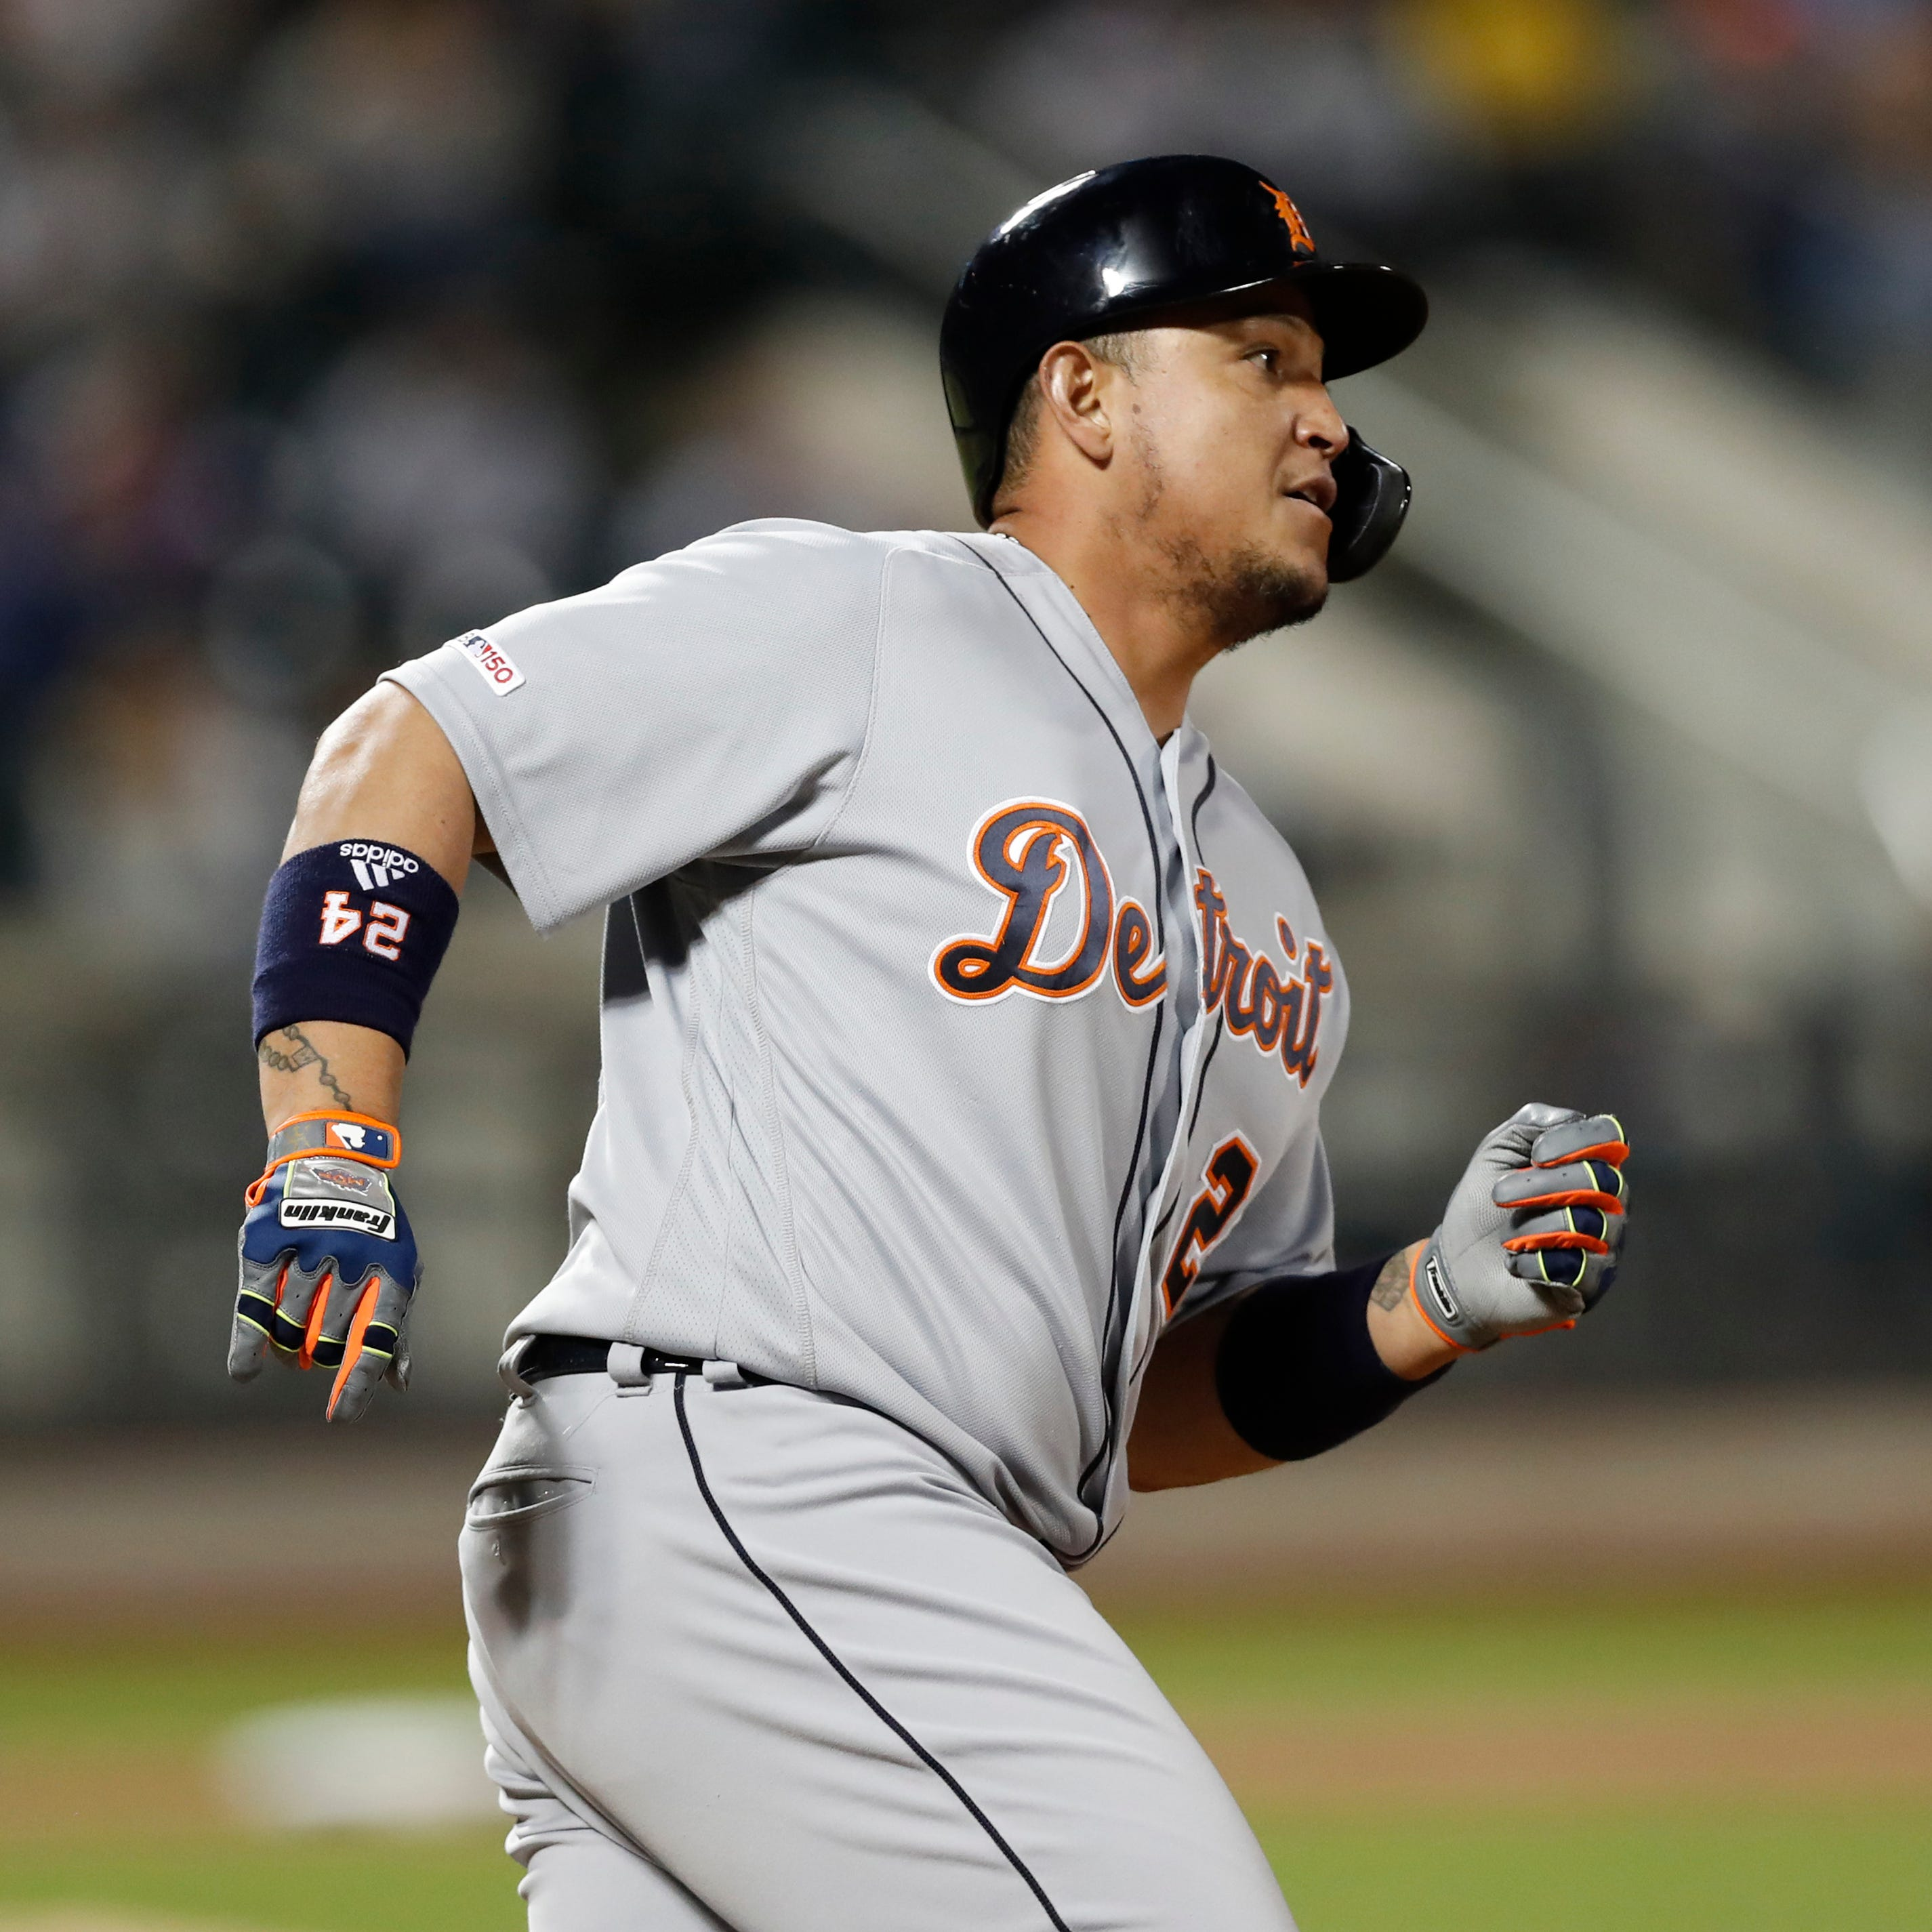 Tigers end long losing streak with 9-8 victory over Mets